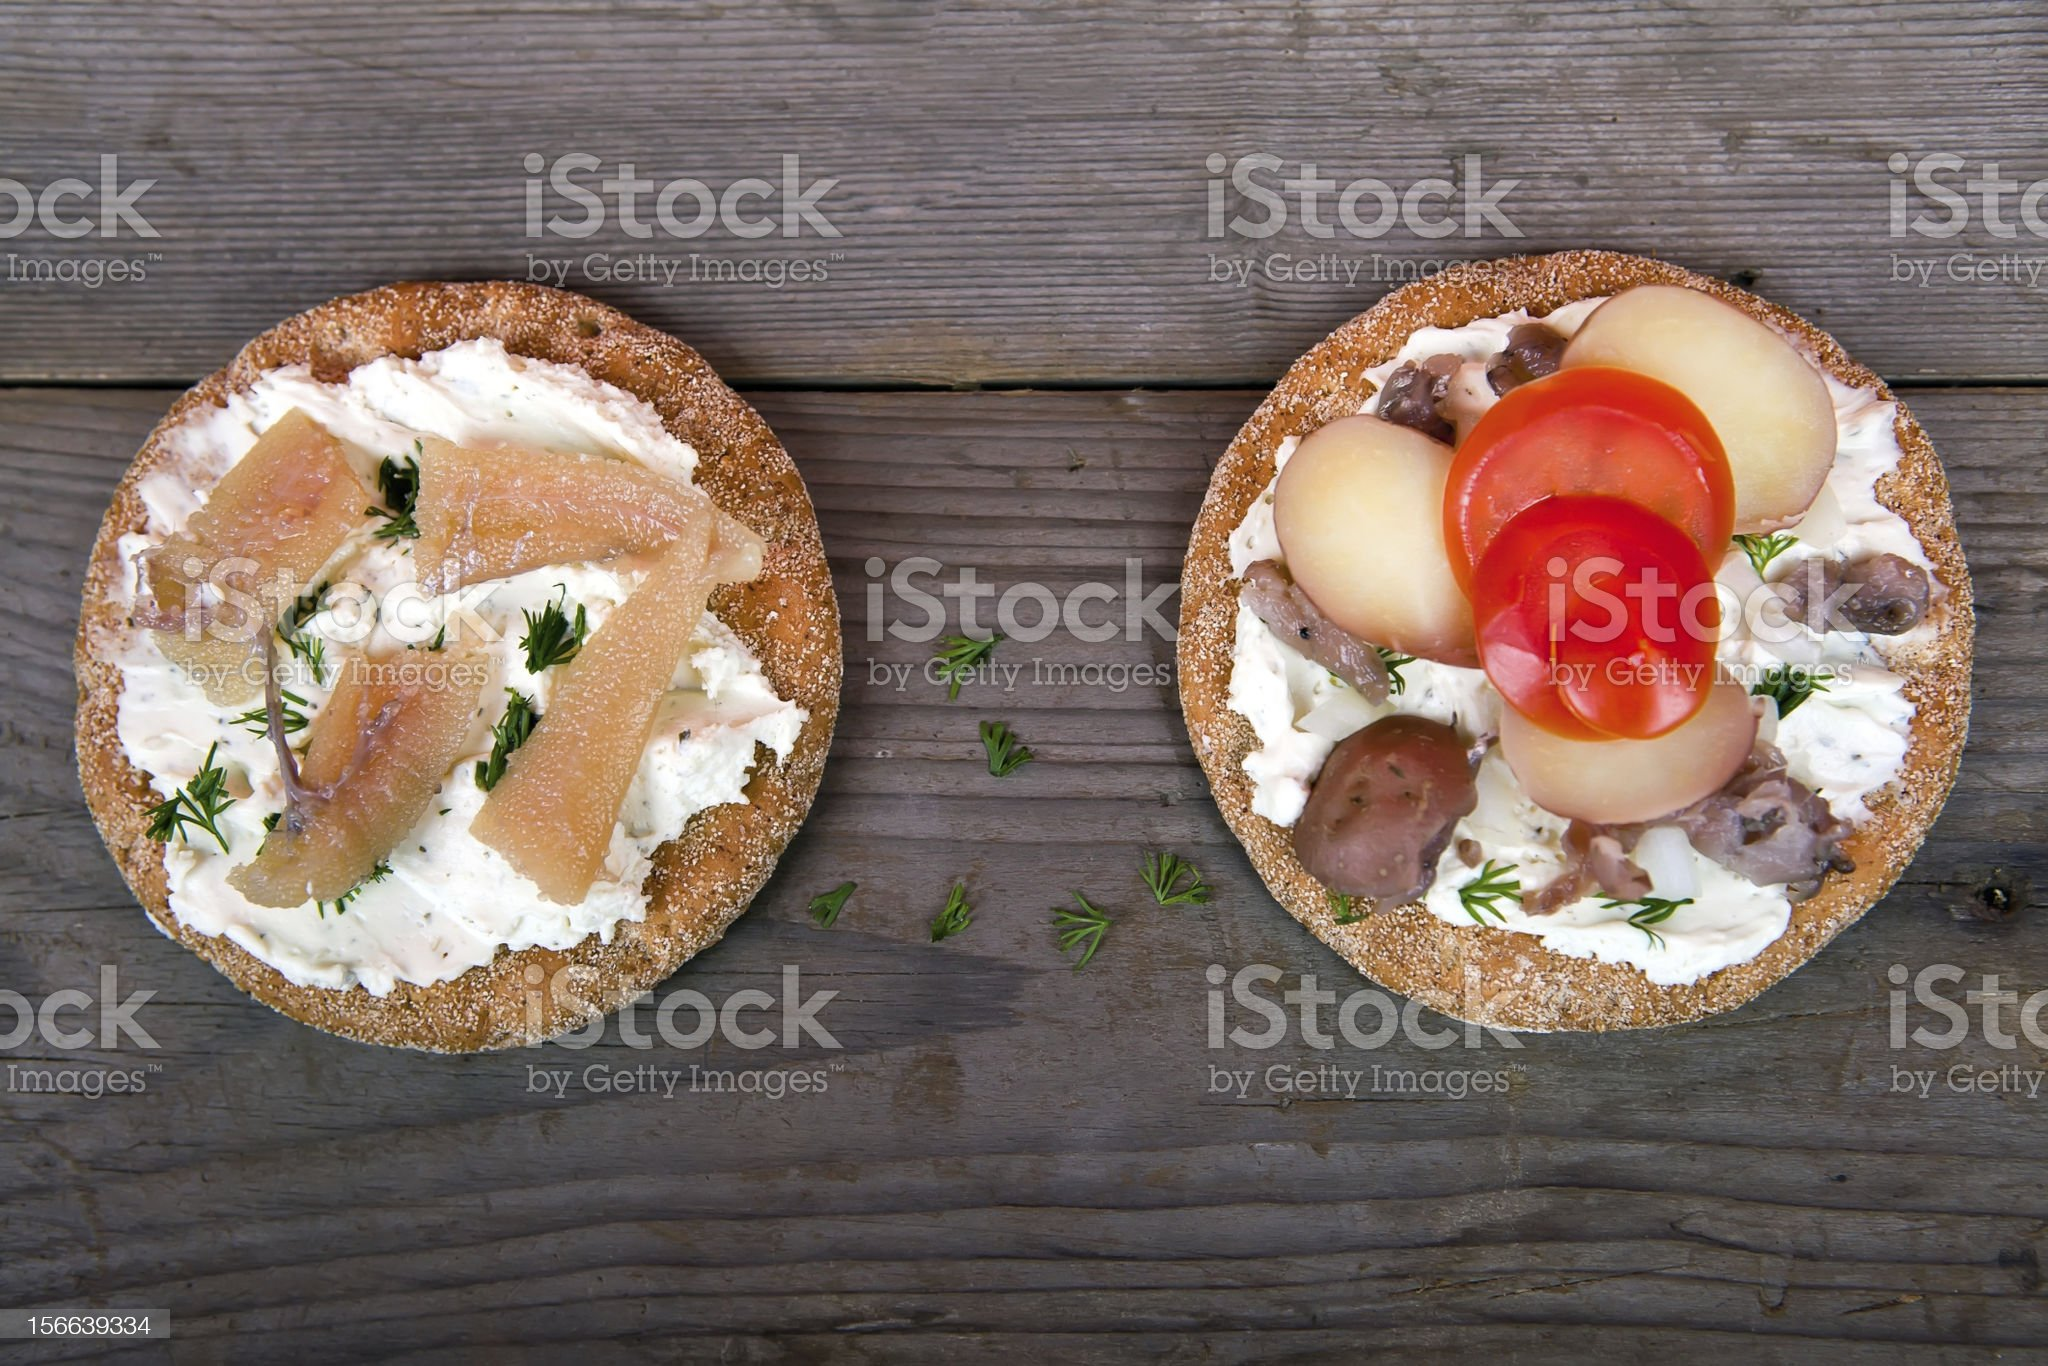 Two sandwiches with surstromming royalty-free stock photo